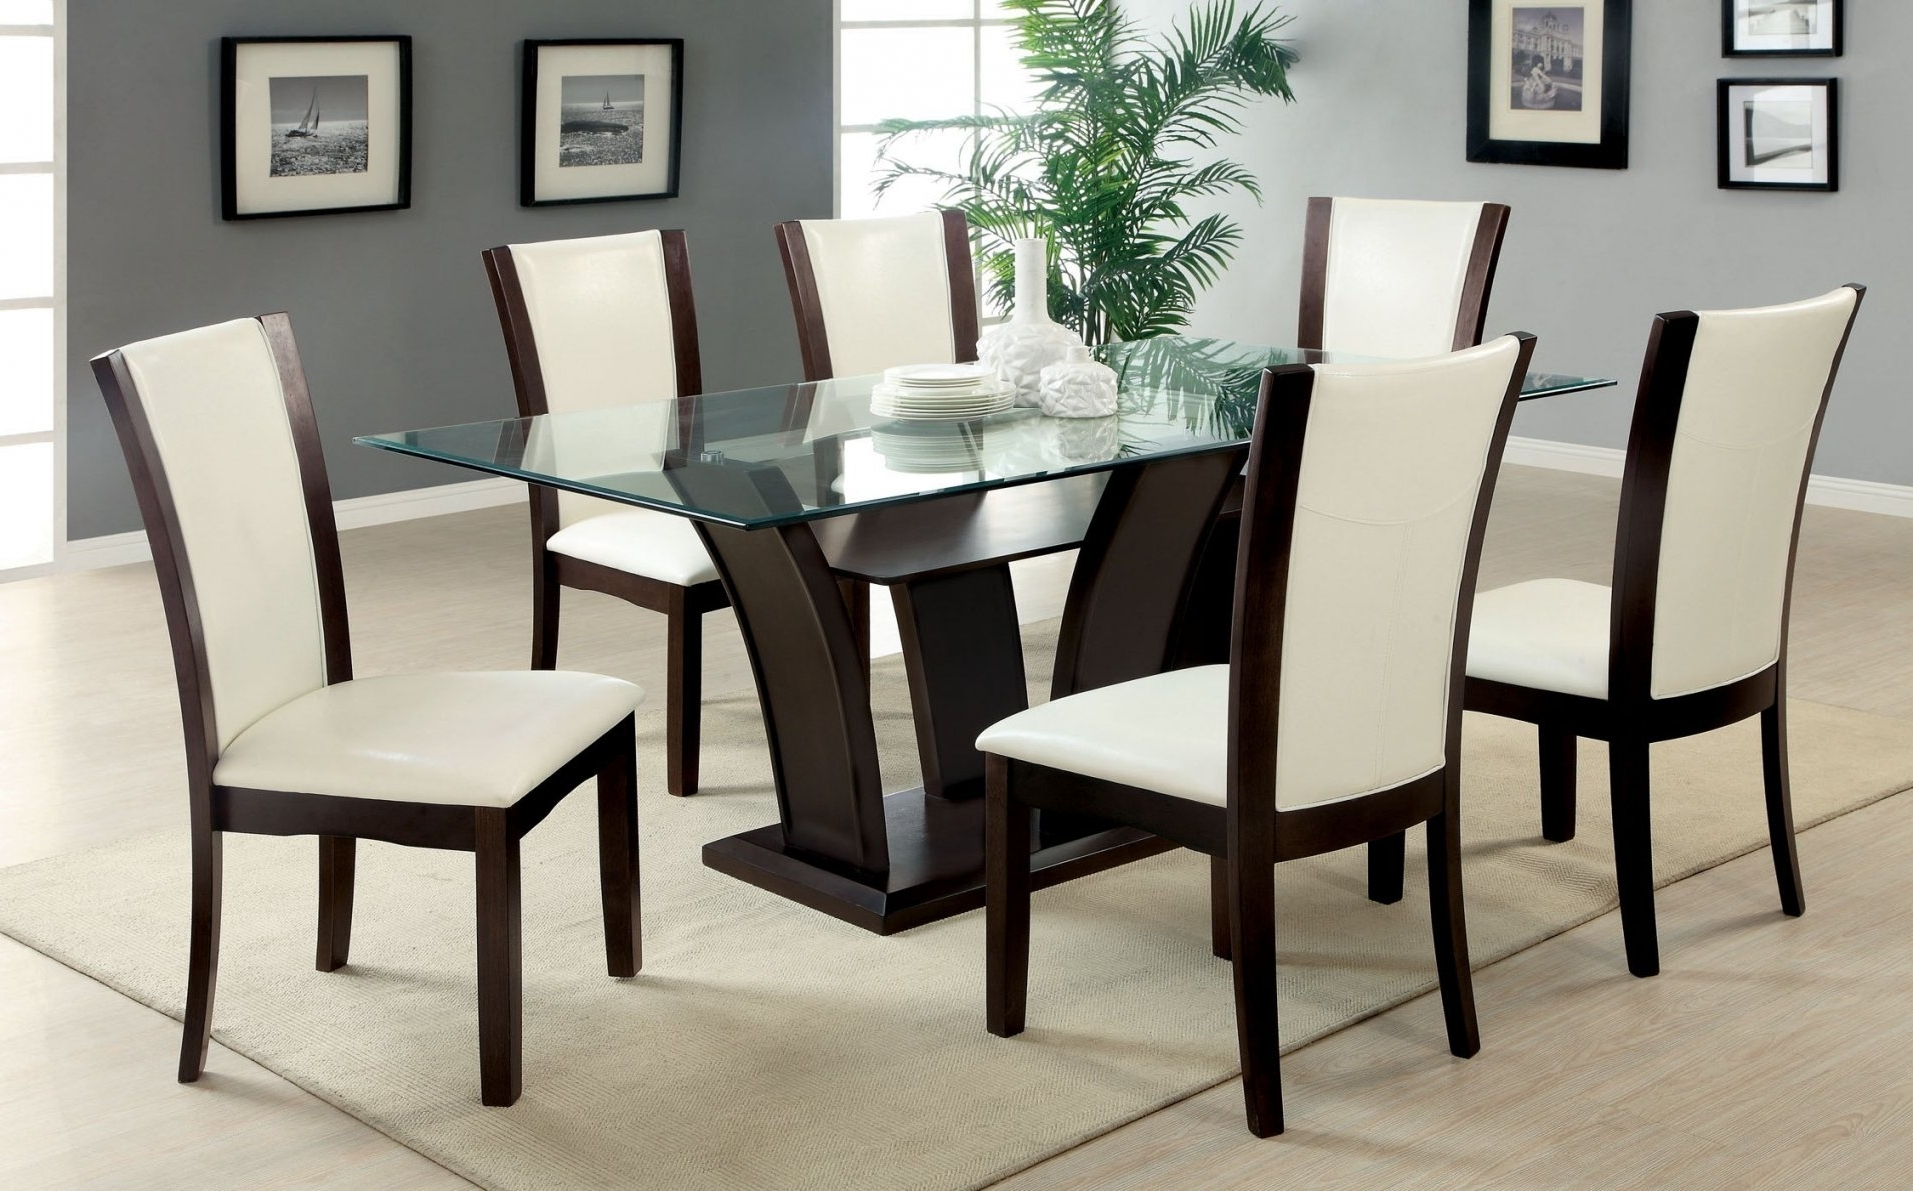 Most Recent 6 Chair Dining Tables Throughout Table Set Seater Price Room Ideas With Regard To 6 Seat Dining Tables (Gallery 7 of 25)